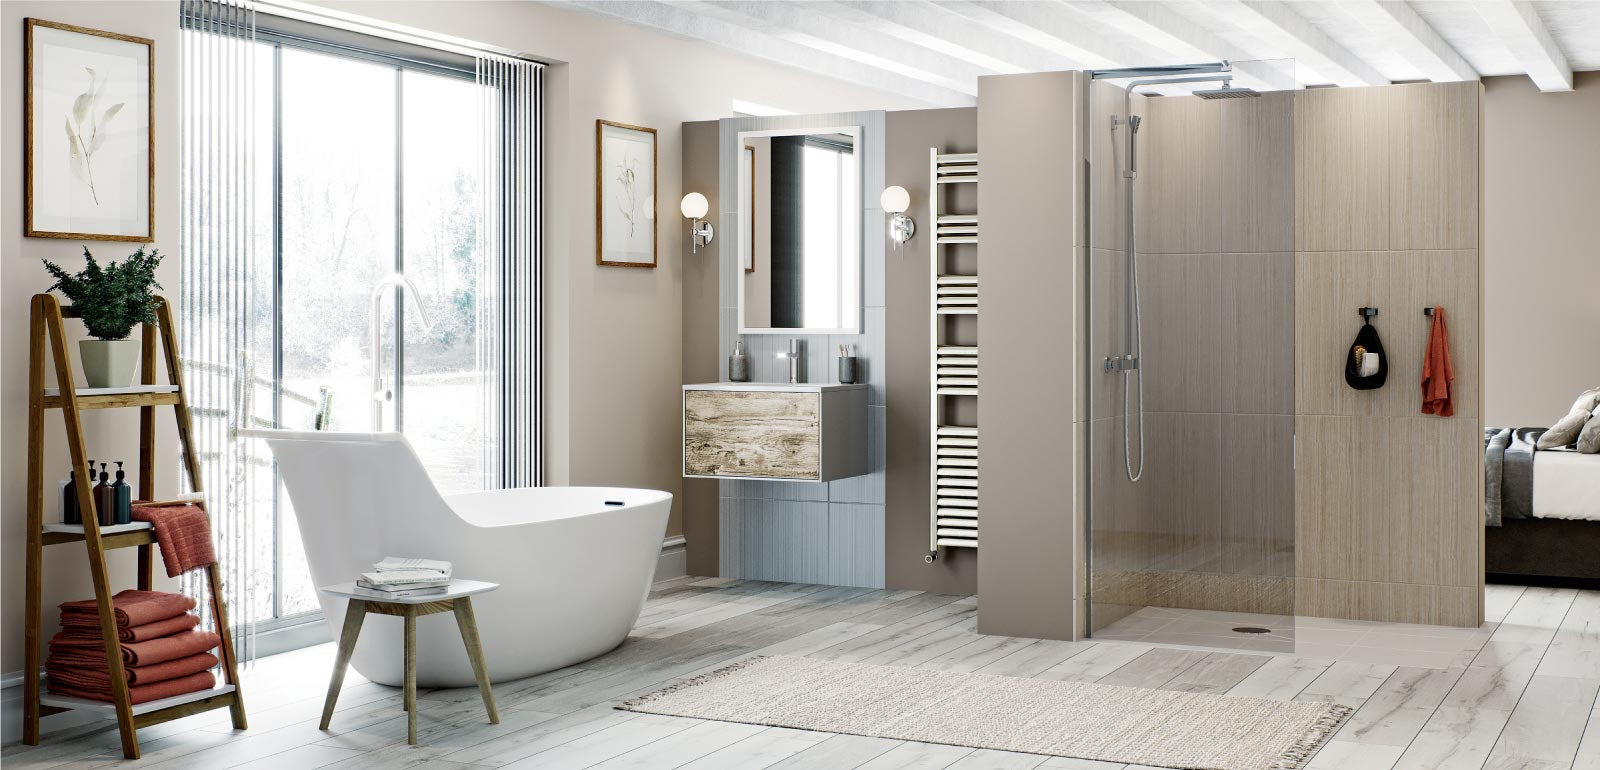 6 bathroom trends to look out for in 2020